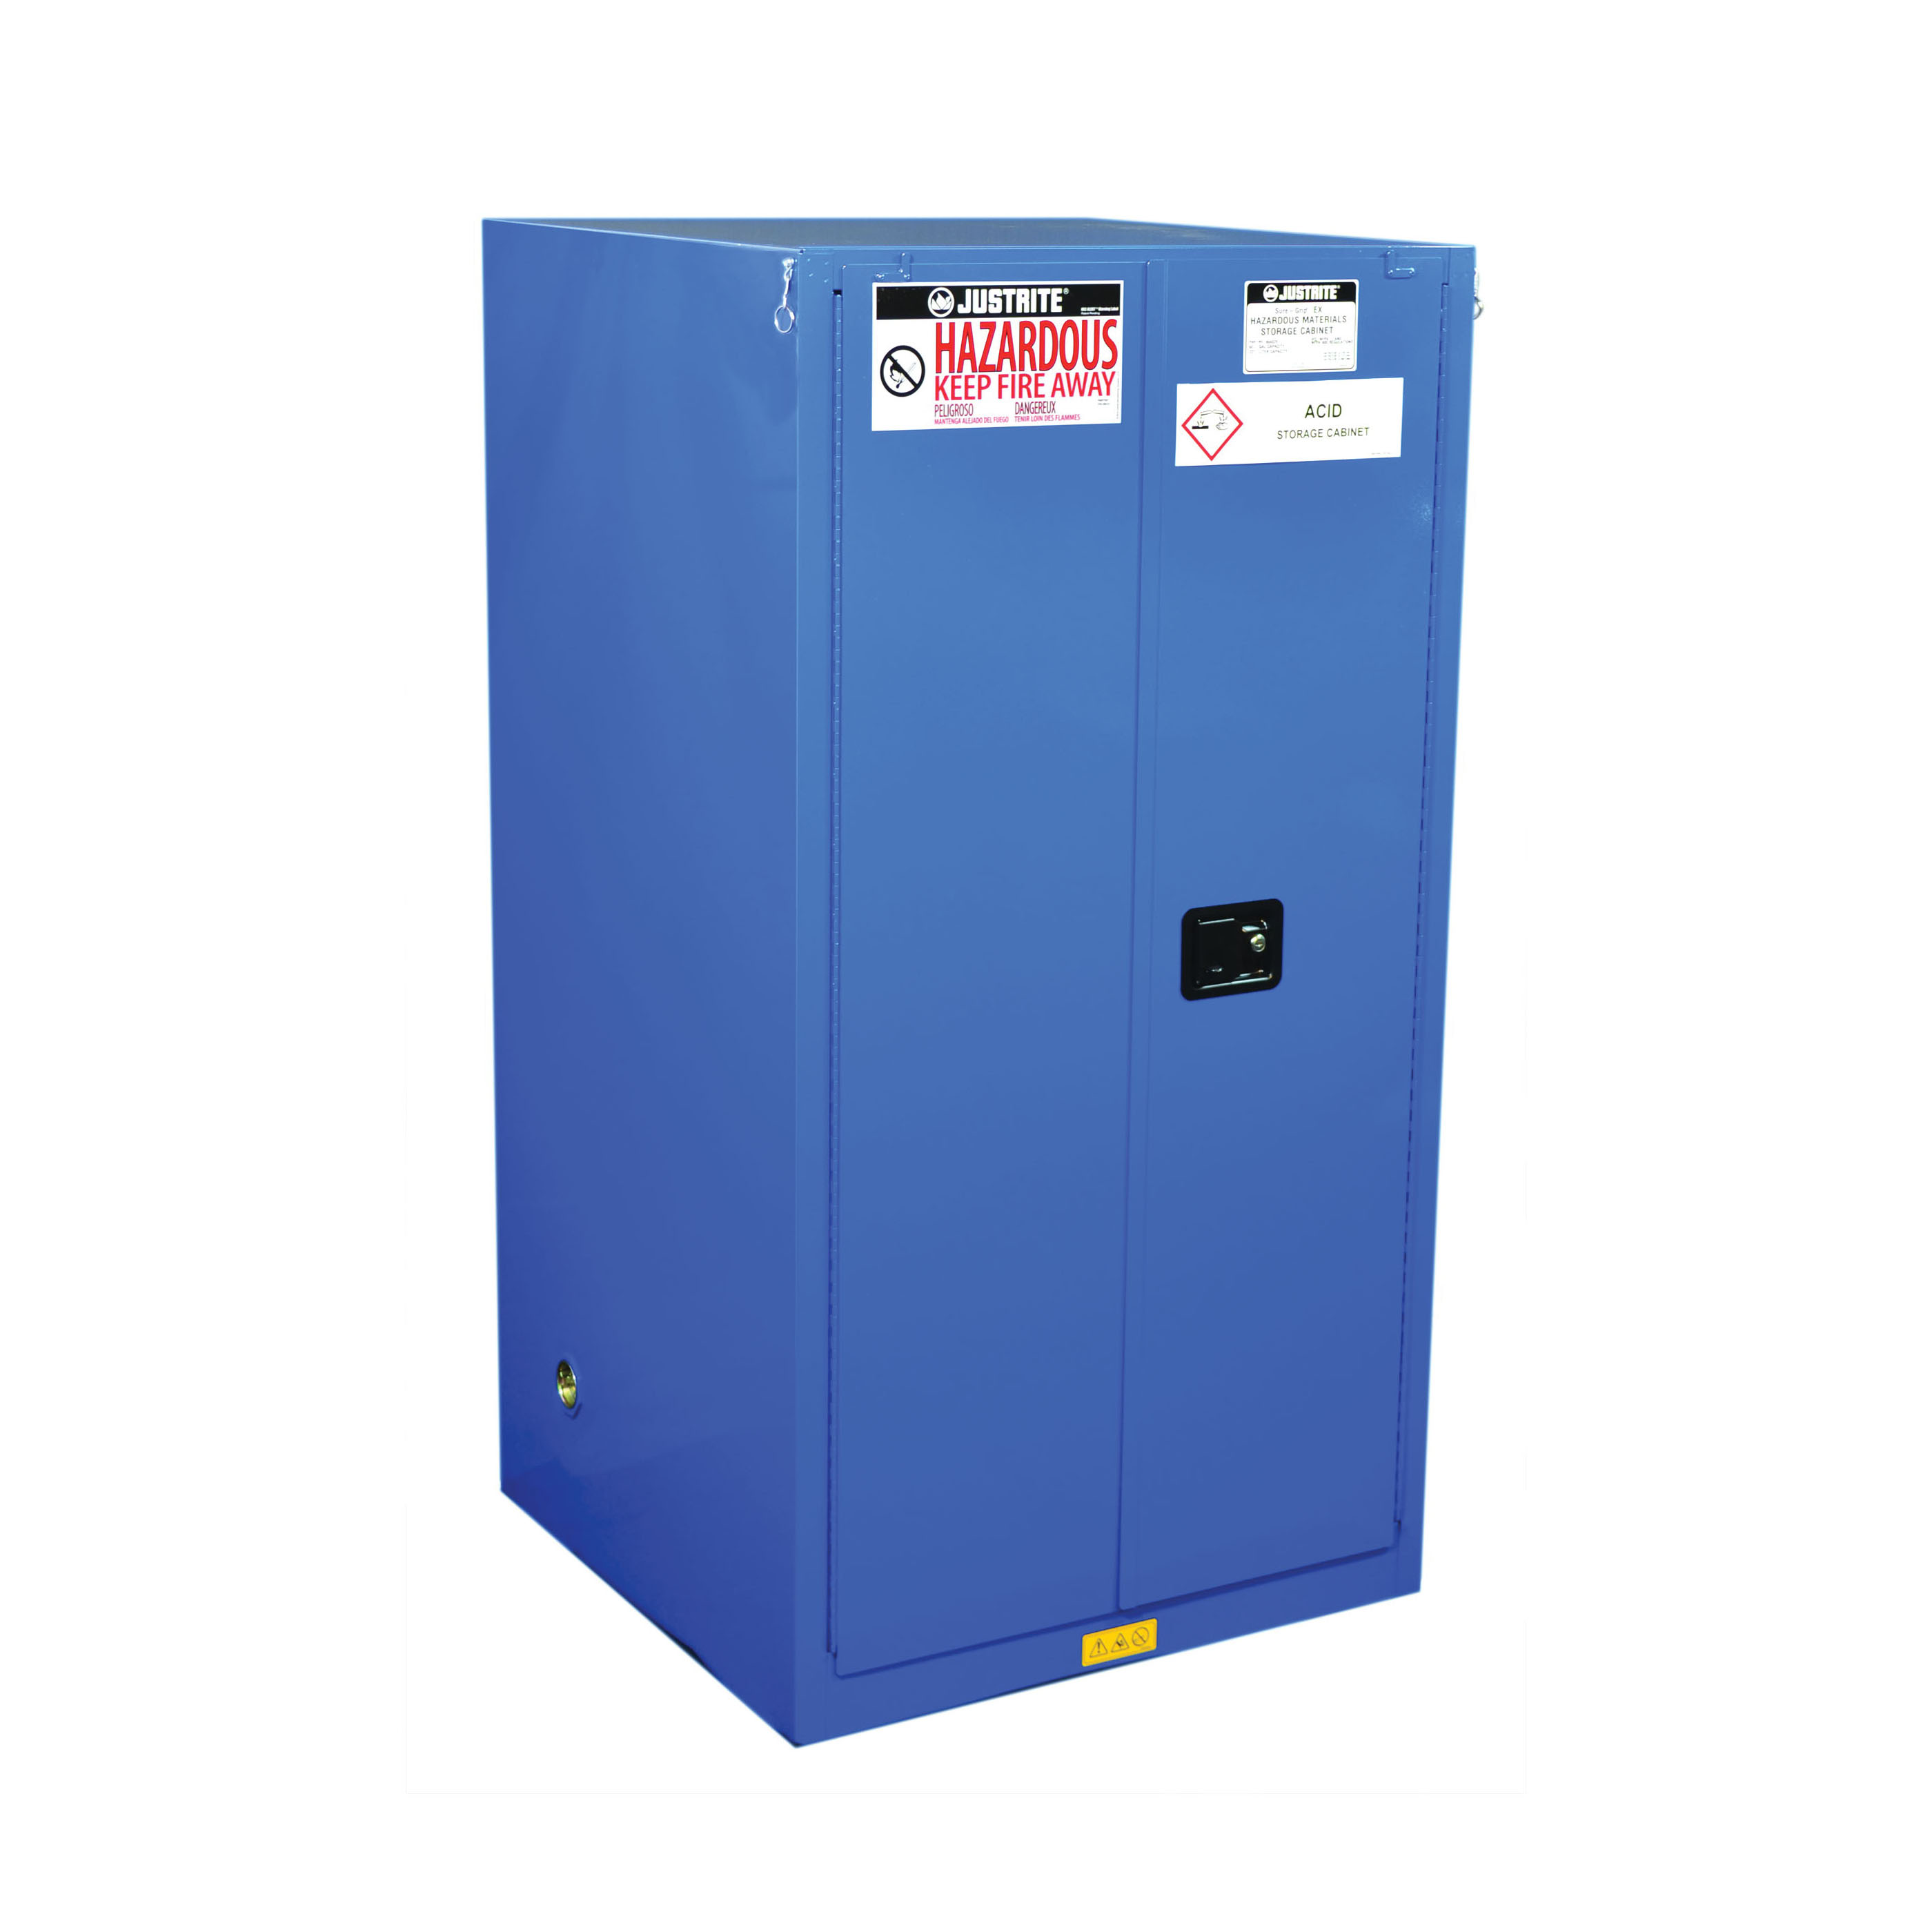 Justrite® 8660282 ChemCor® Classic Corrosive Safety Cabinet, 60 gal Capacity, U-Loc™ Handle, 65 in H x 34 in W x 34 in D, Self-Close Door, 2 Doors, 2 Shelves, 18 ga Cold Rolled Steel, Royal Blue